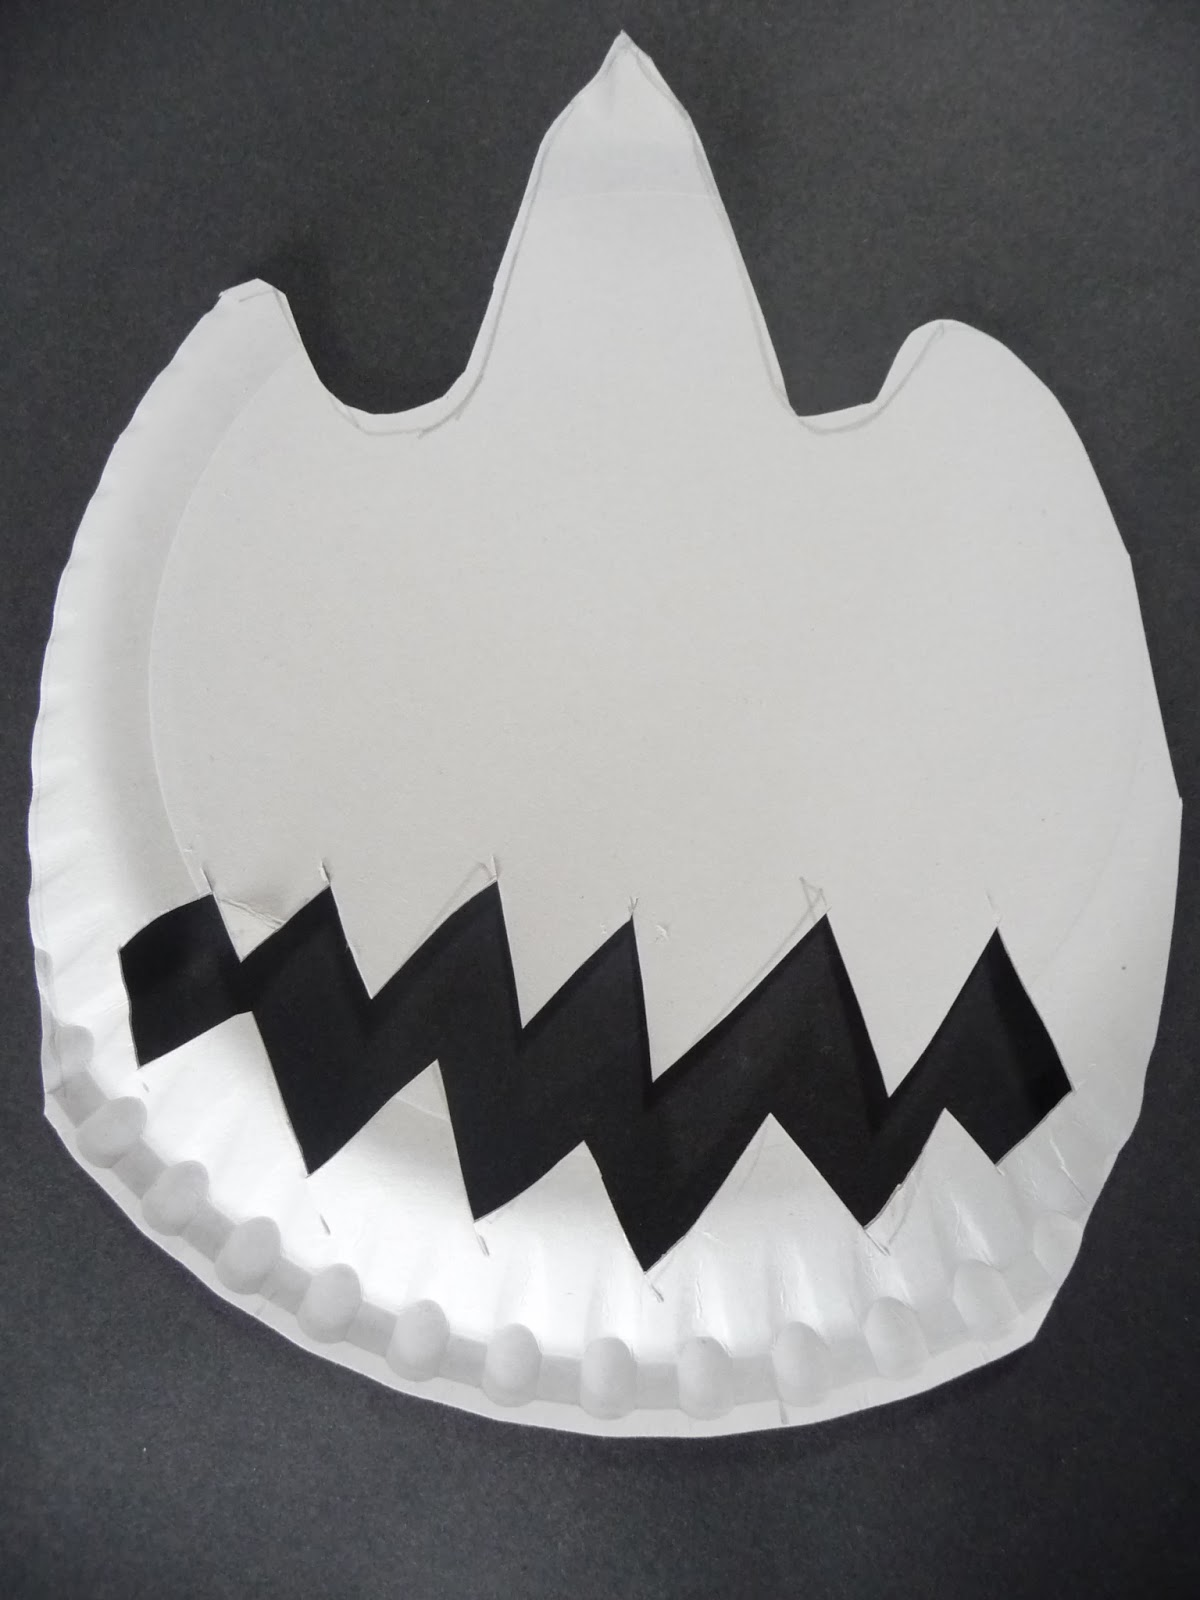 Cut the above shape out of the paper plate & Little Art Club: Dinosaur/ T Rex mask